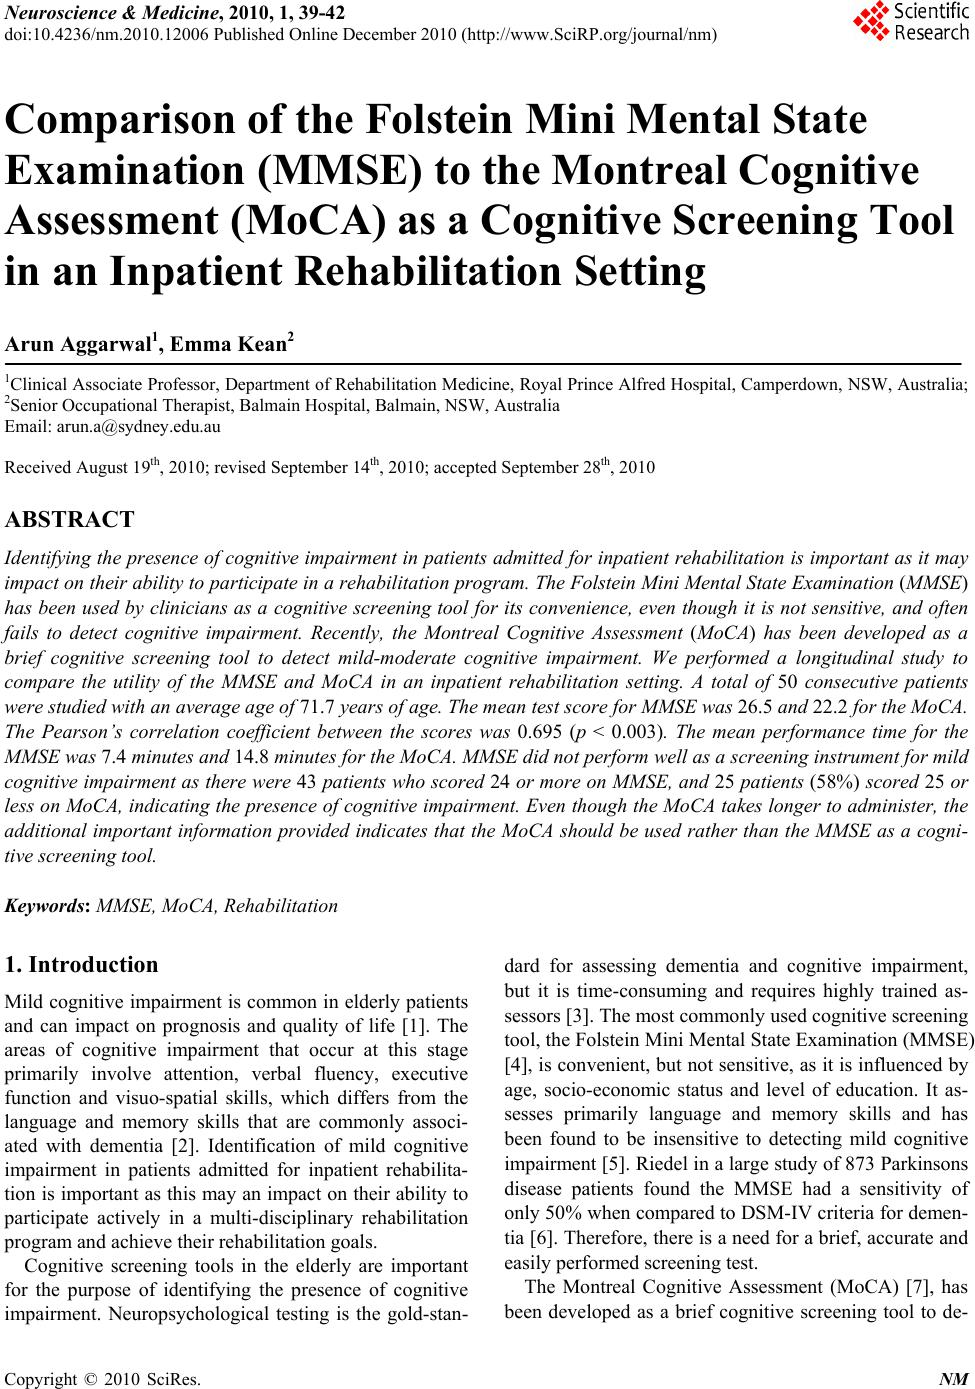 Comparison of the folstein mini mental state examination mmse to the montreal cognitive assessment moca as a cognitive screening tool in an inpatient